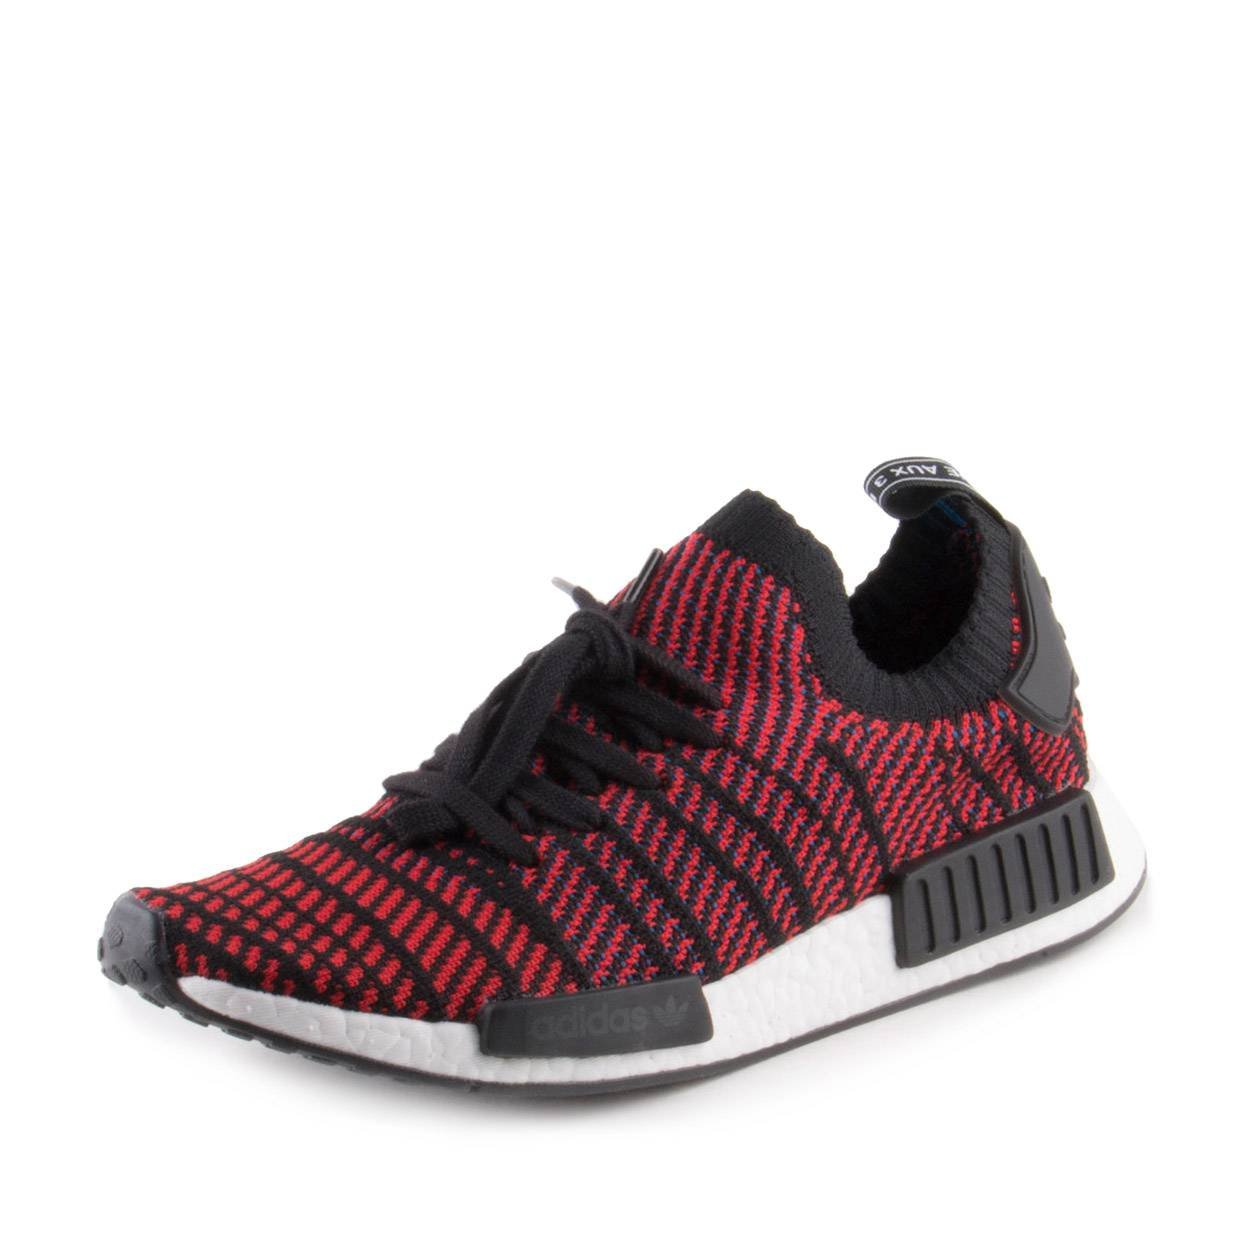 822bfbcf86514 adidas NMD R1 STLT Primeknit in Core Black Solid Red